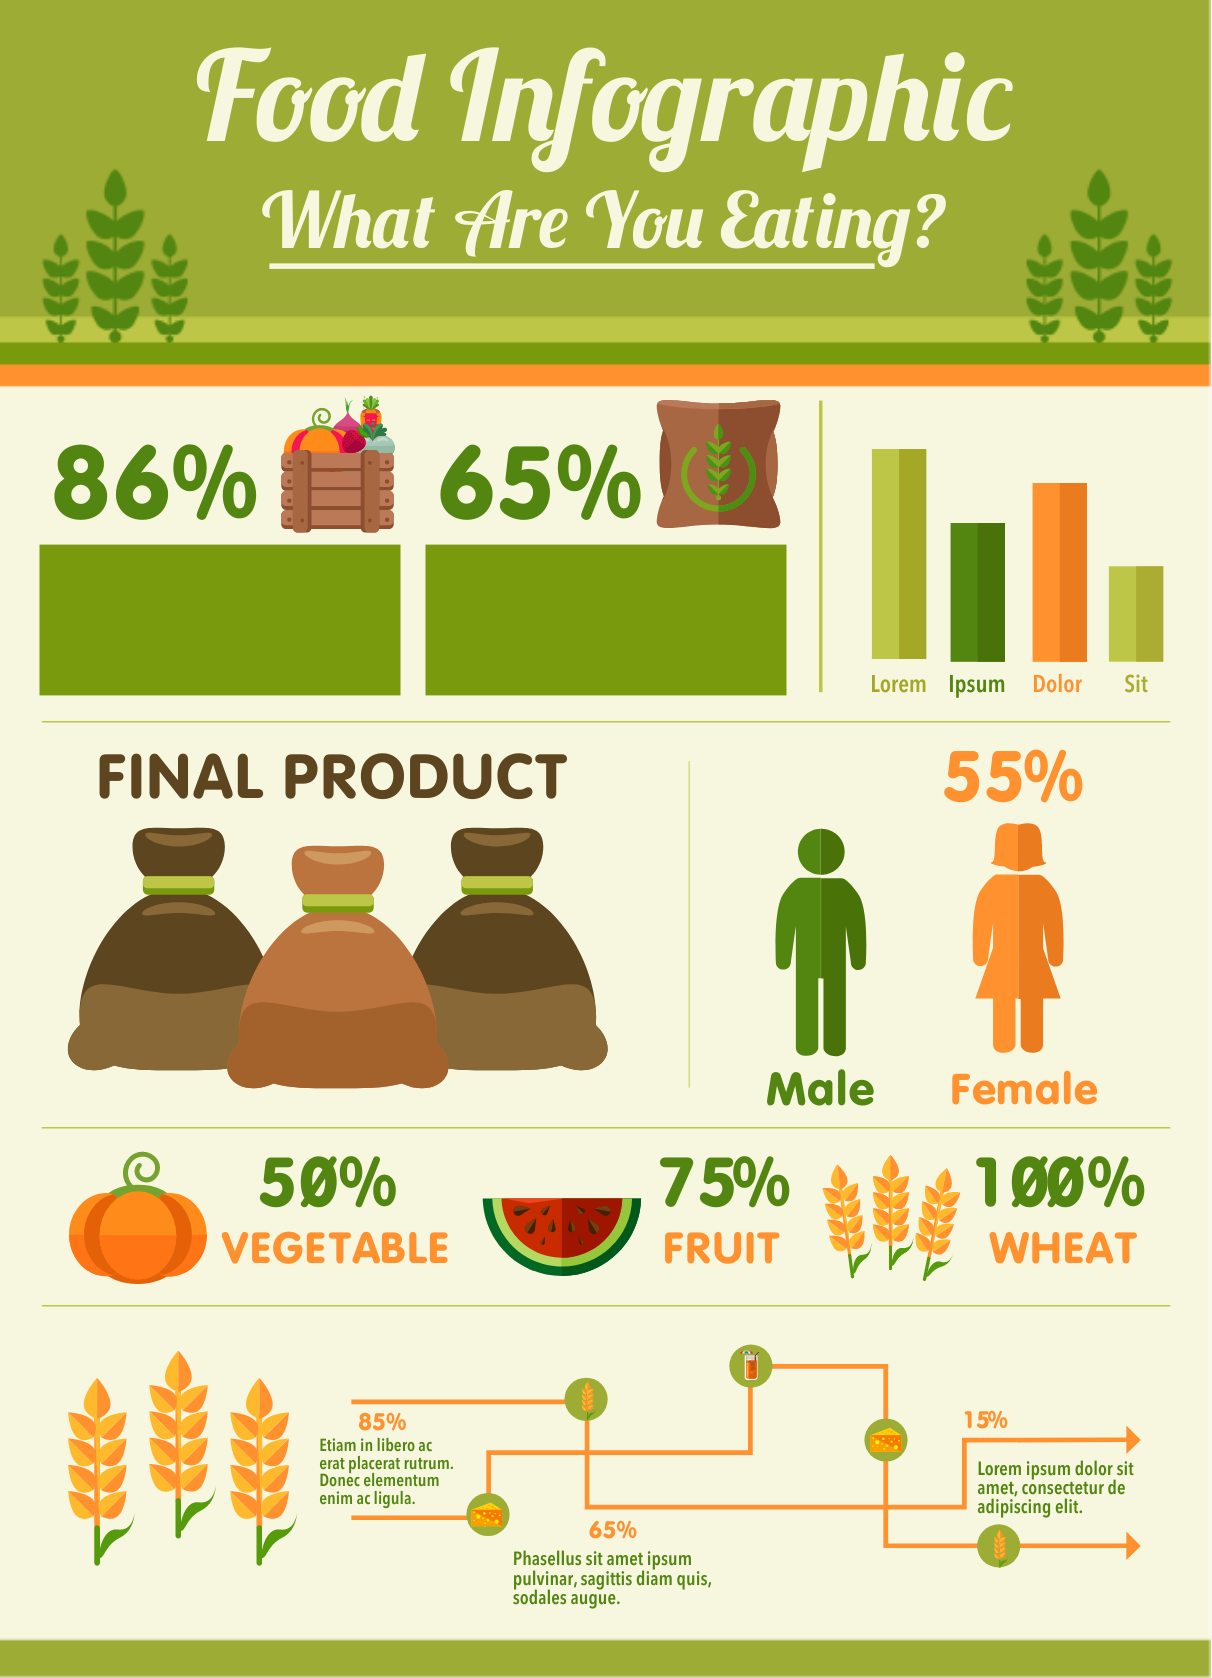 an infographic about food